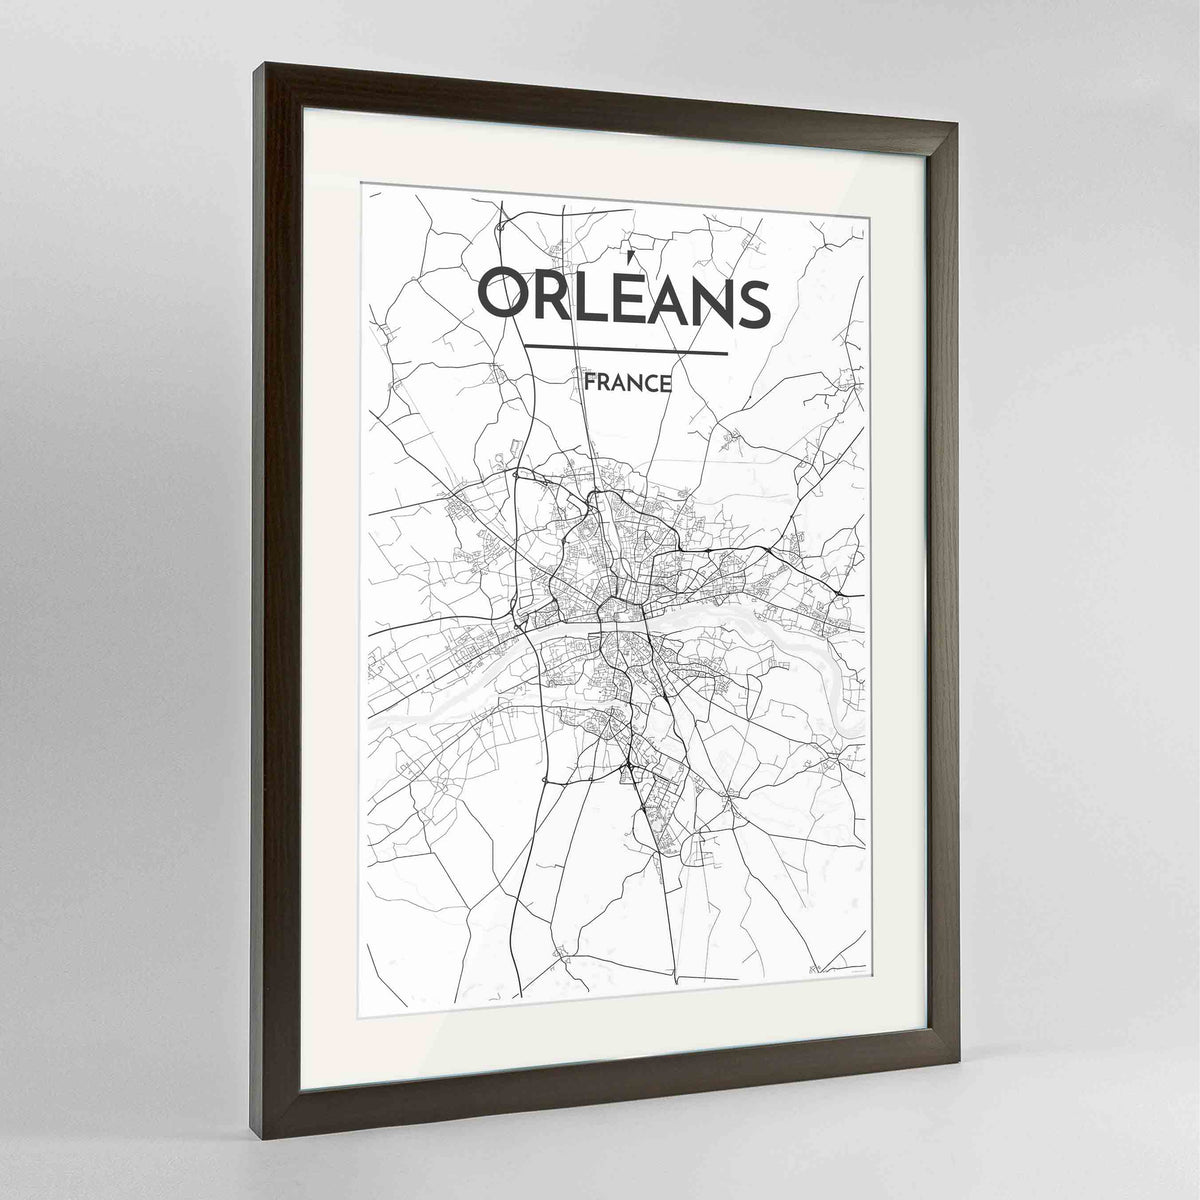 "Framed Orleans Map Art Print 24x36"" Contemporary Walnut frame Point Two Design Group"